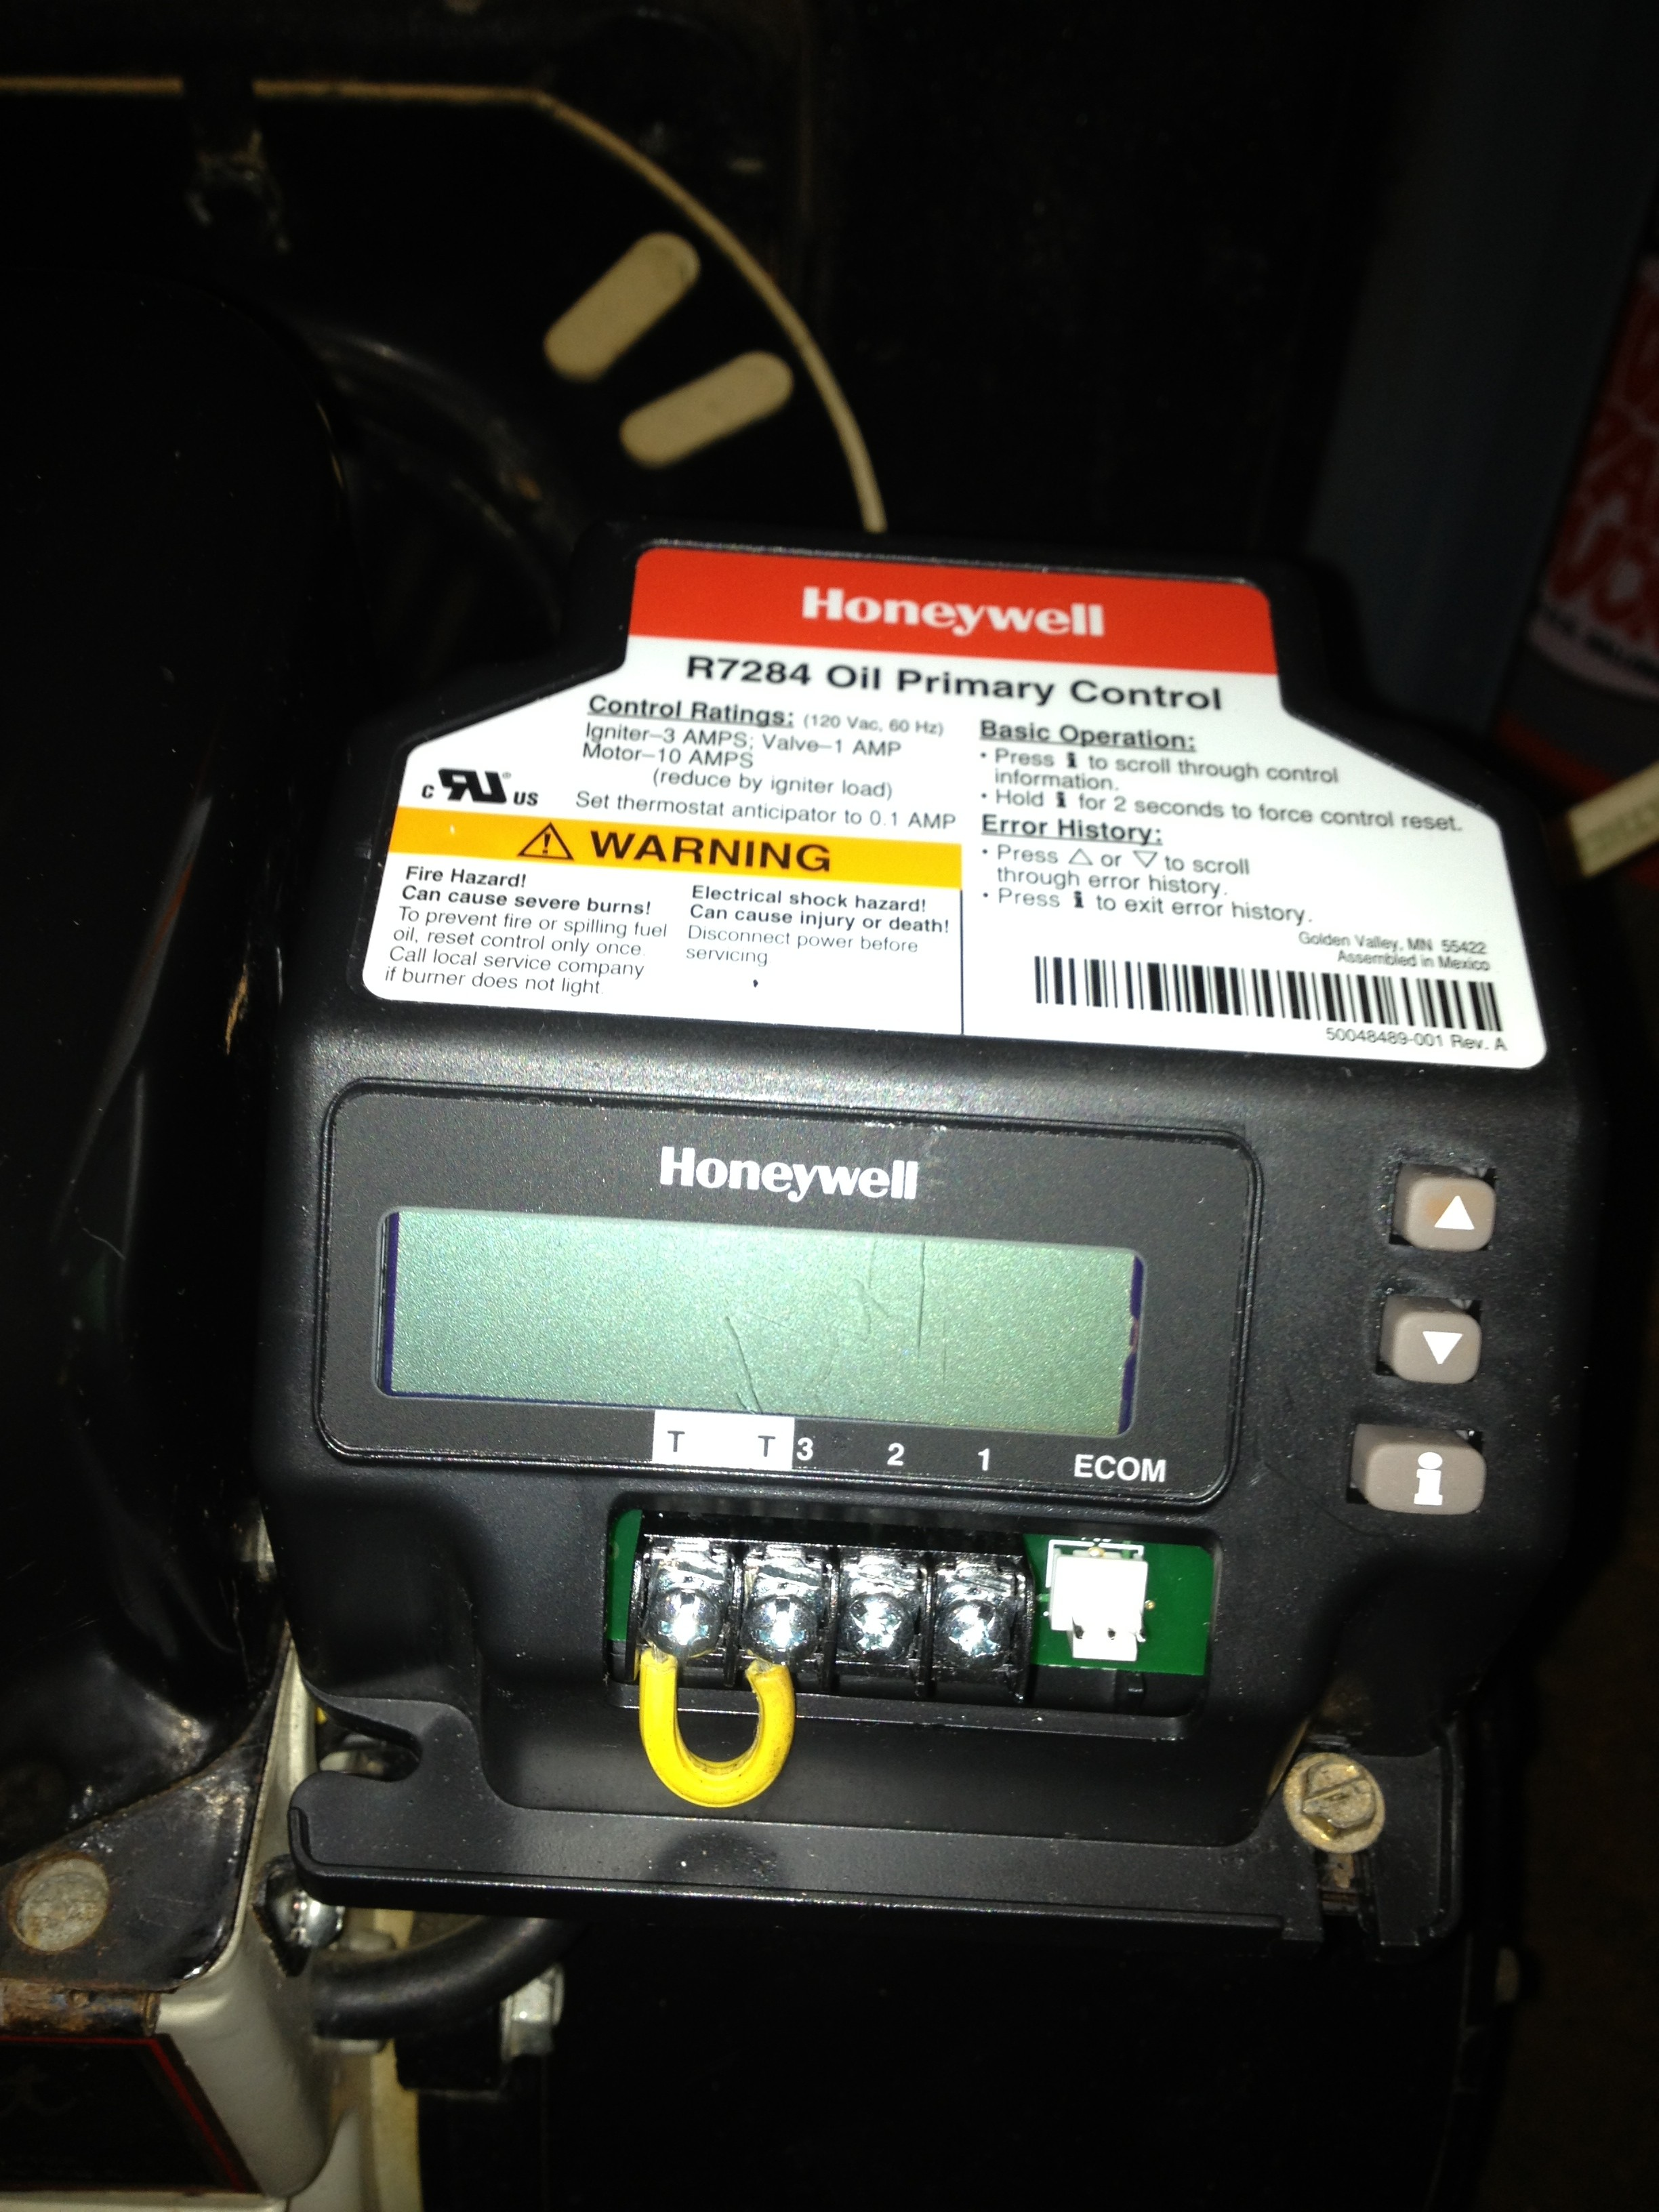 Honeywell R7284U oil primary mdash Heating Help The Wall